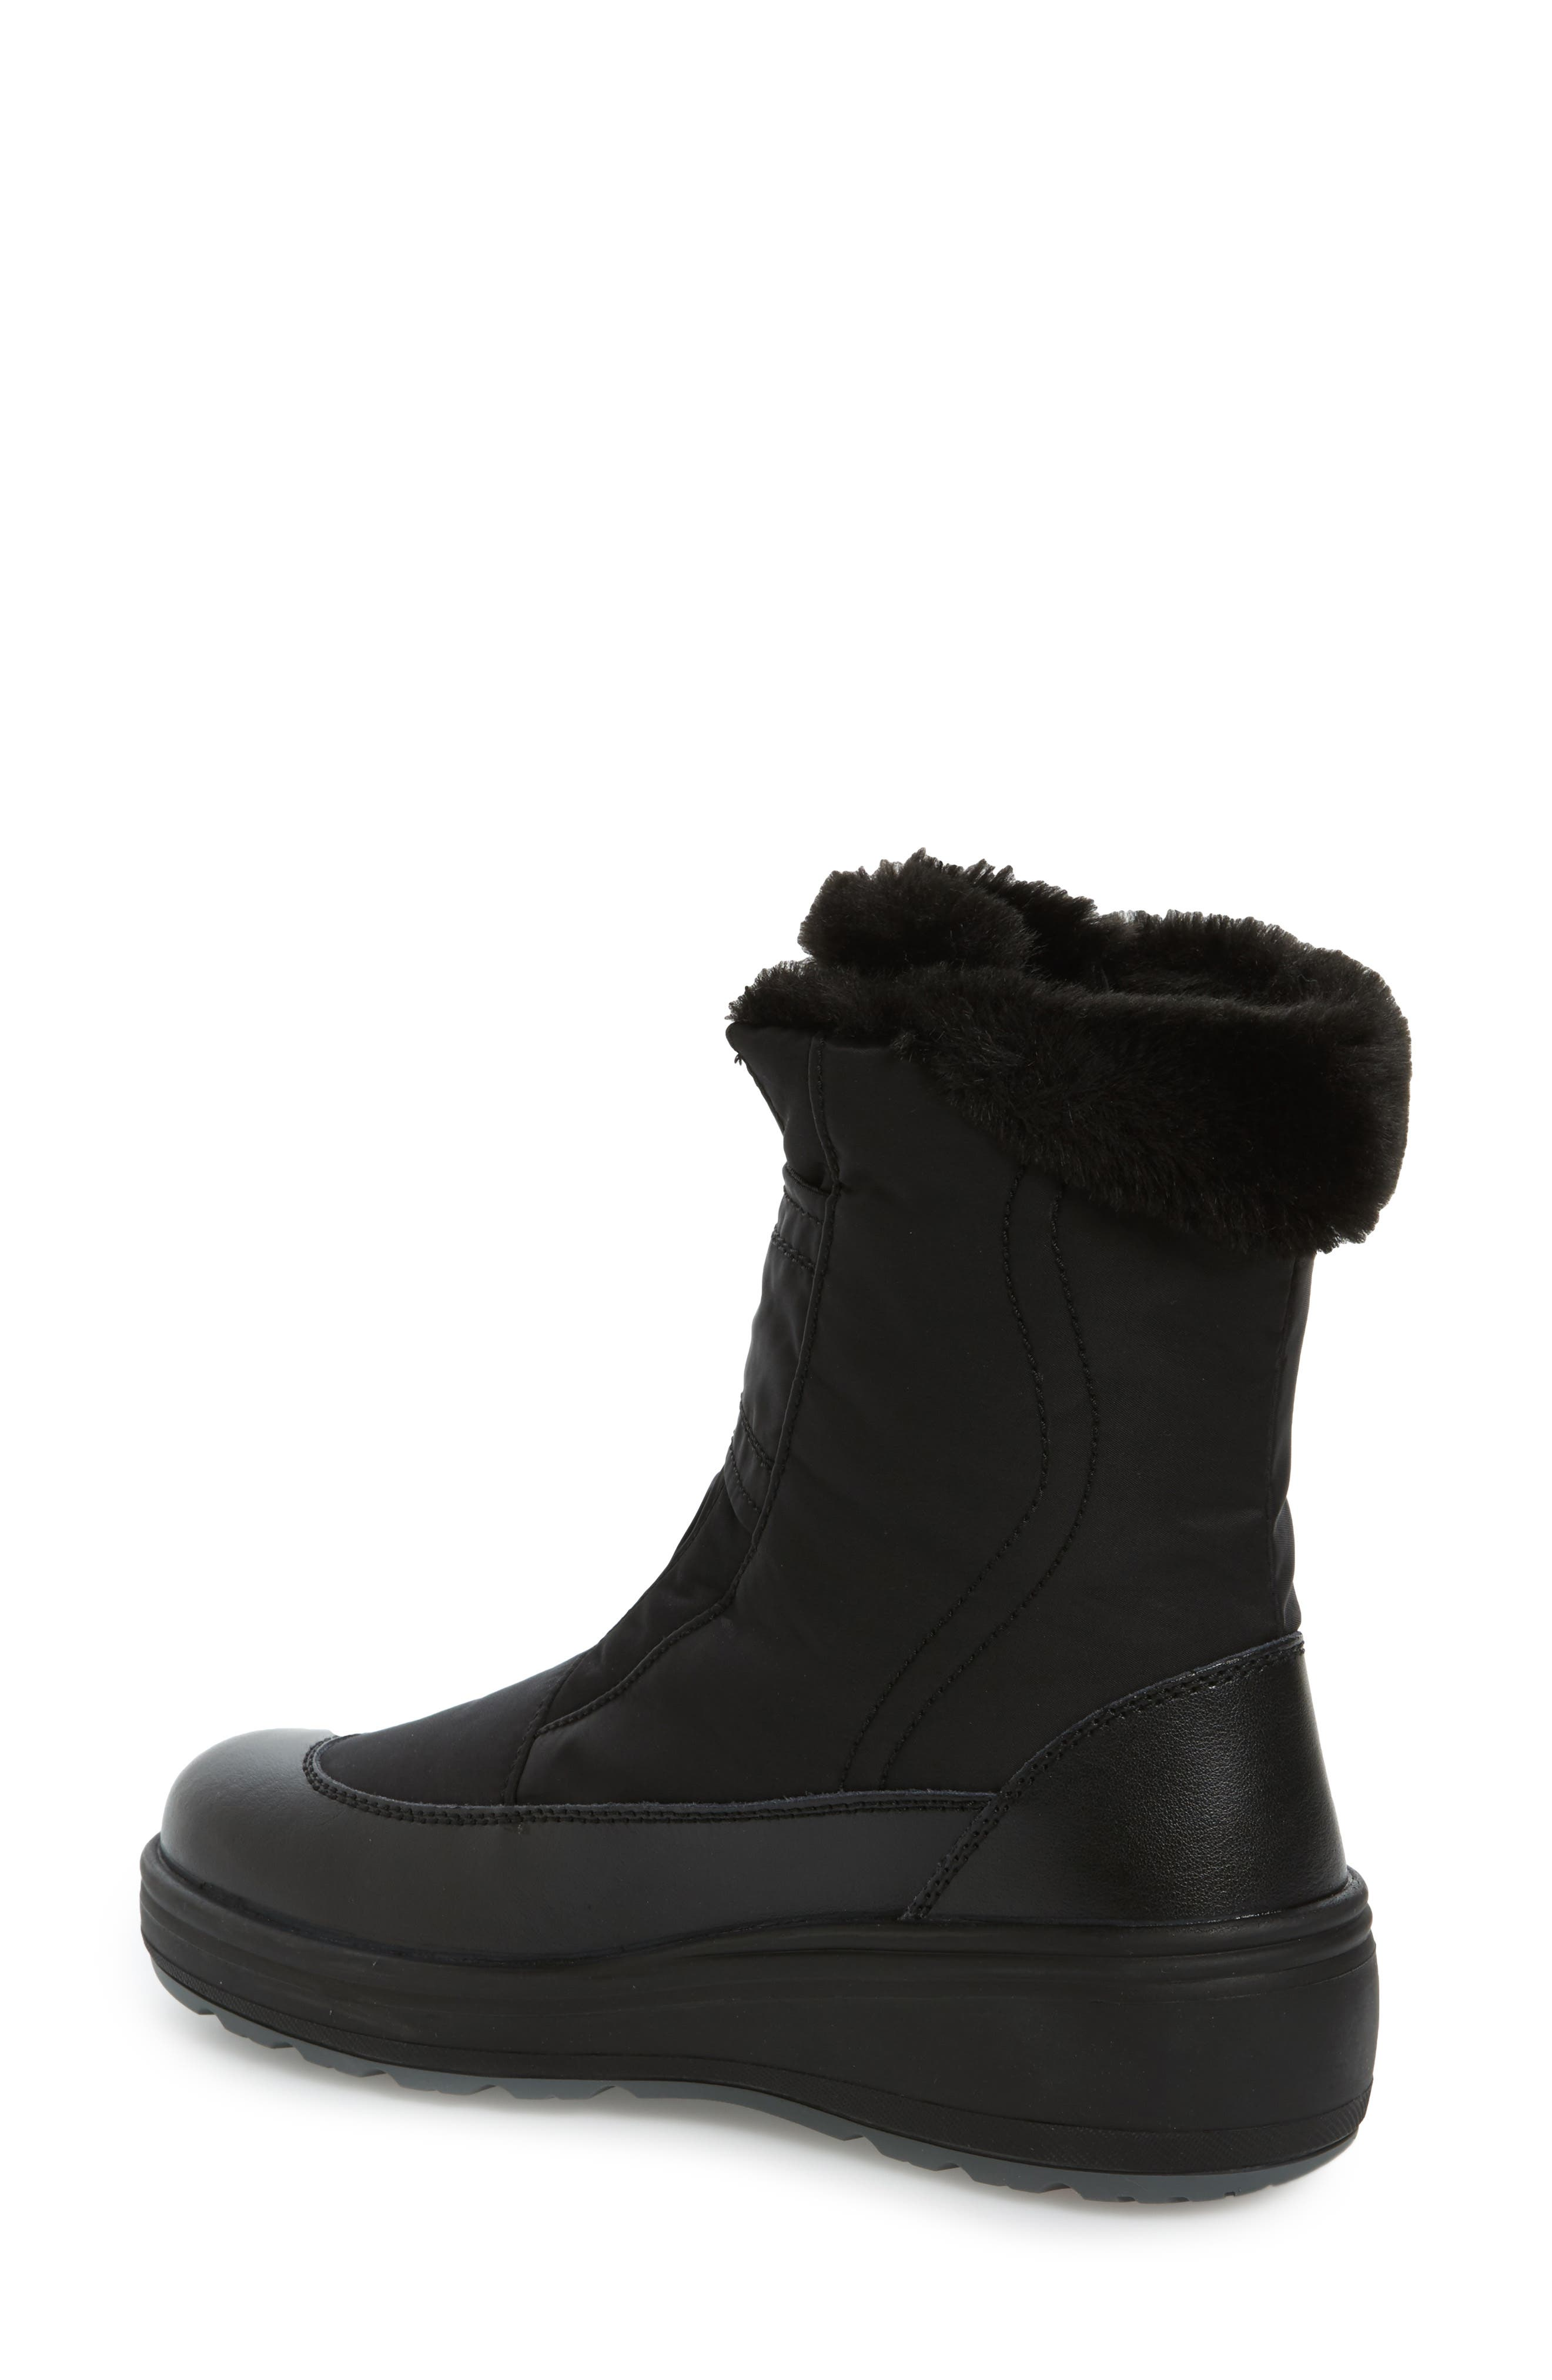 Samara Waterproof Insulated Boot with Faux Fur Lining,                             Alternate thumbnail 2, color,                             001